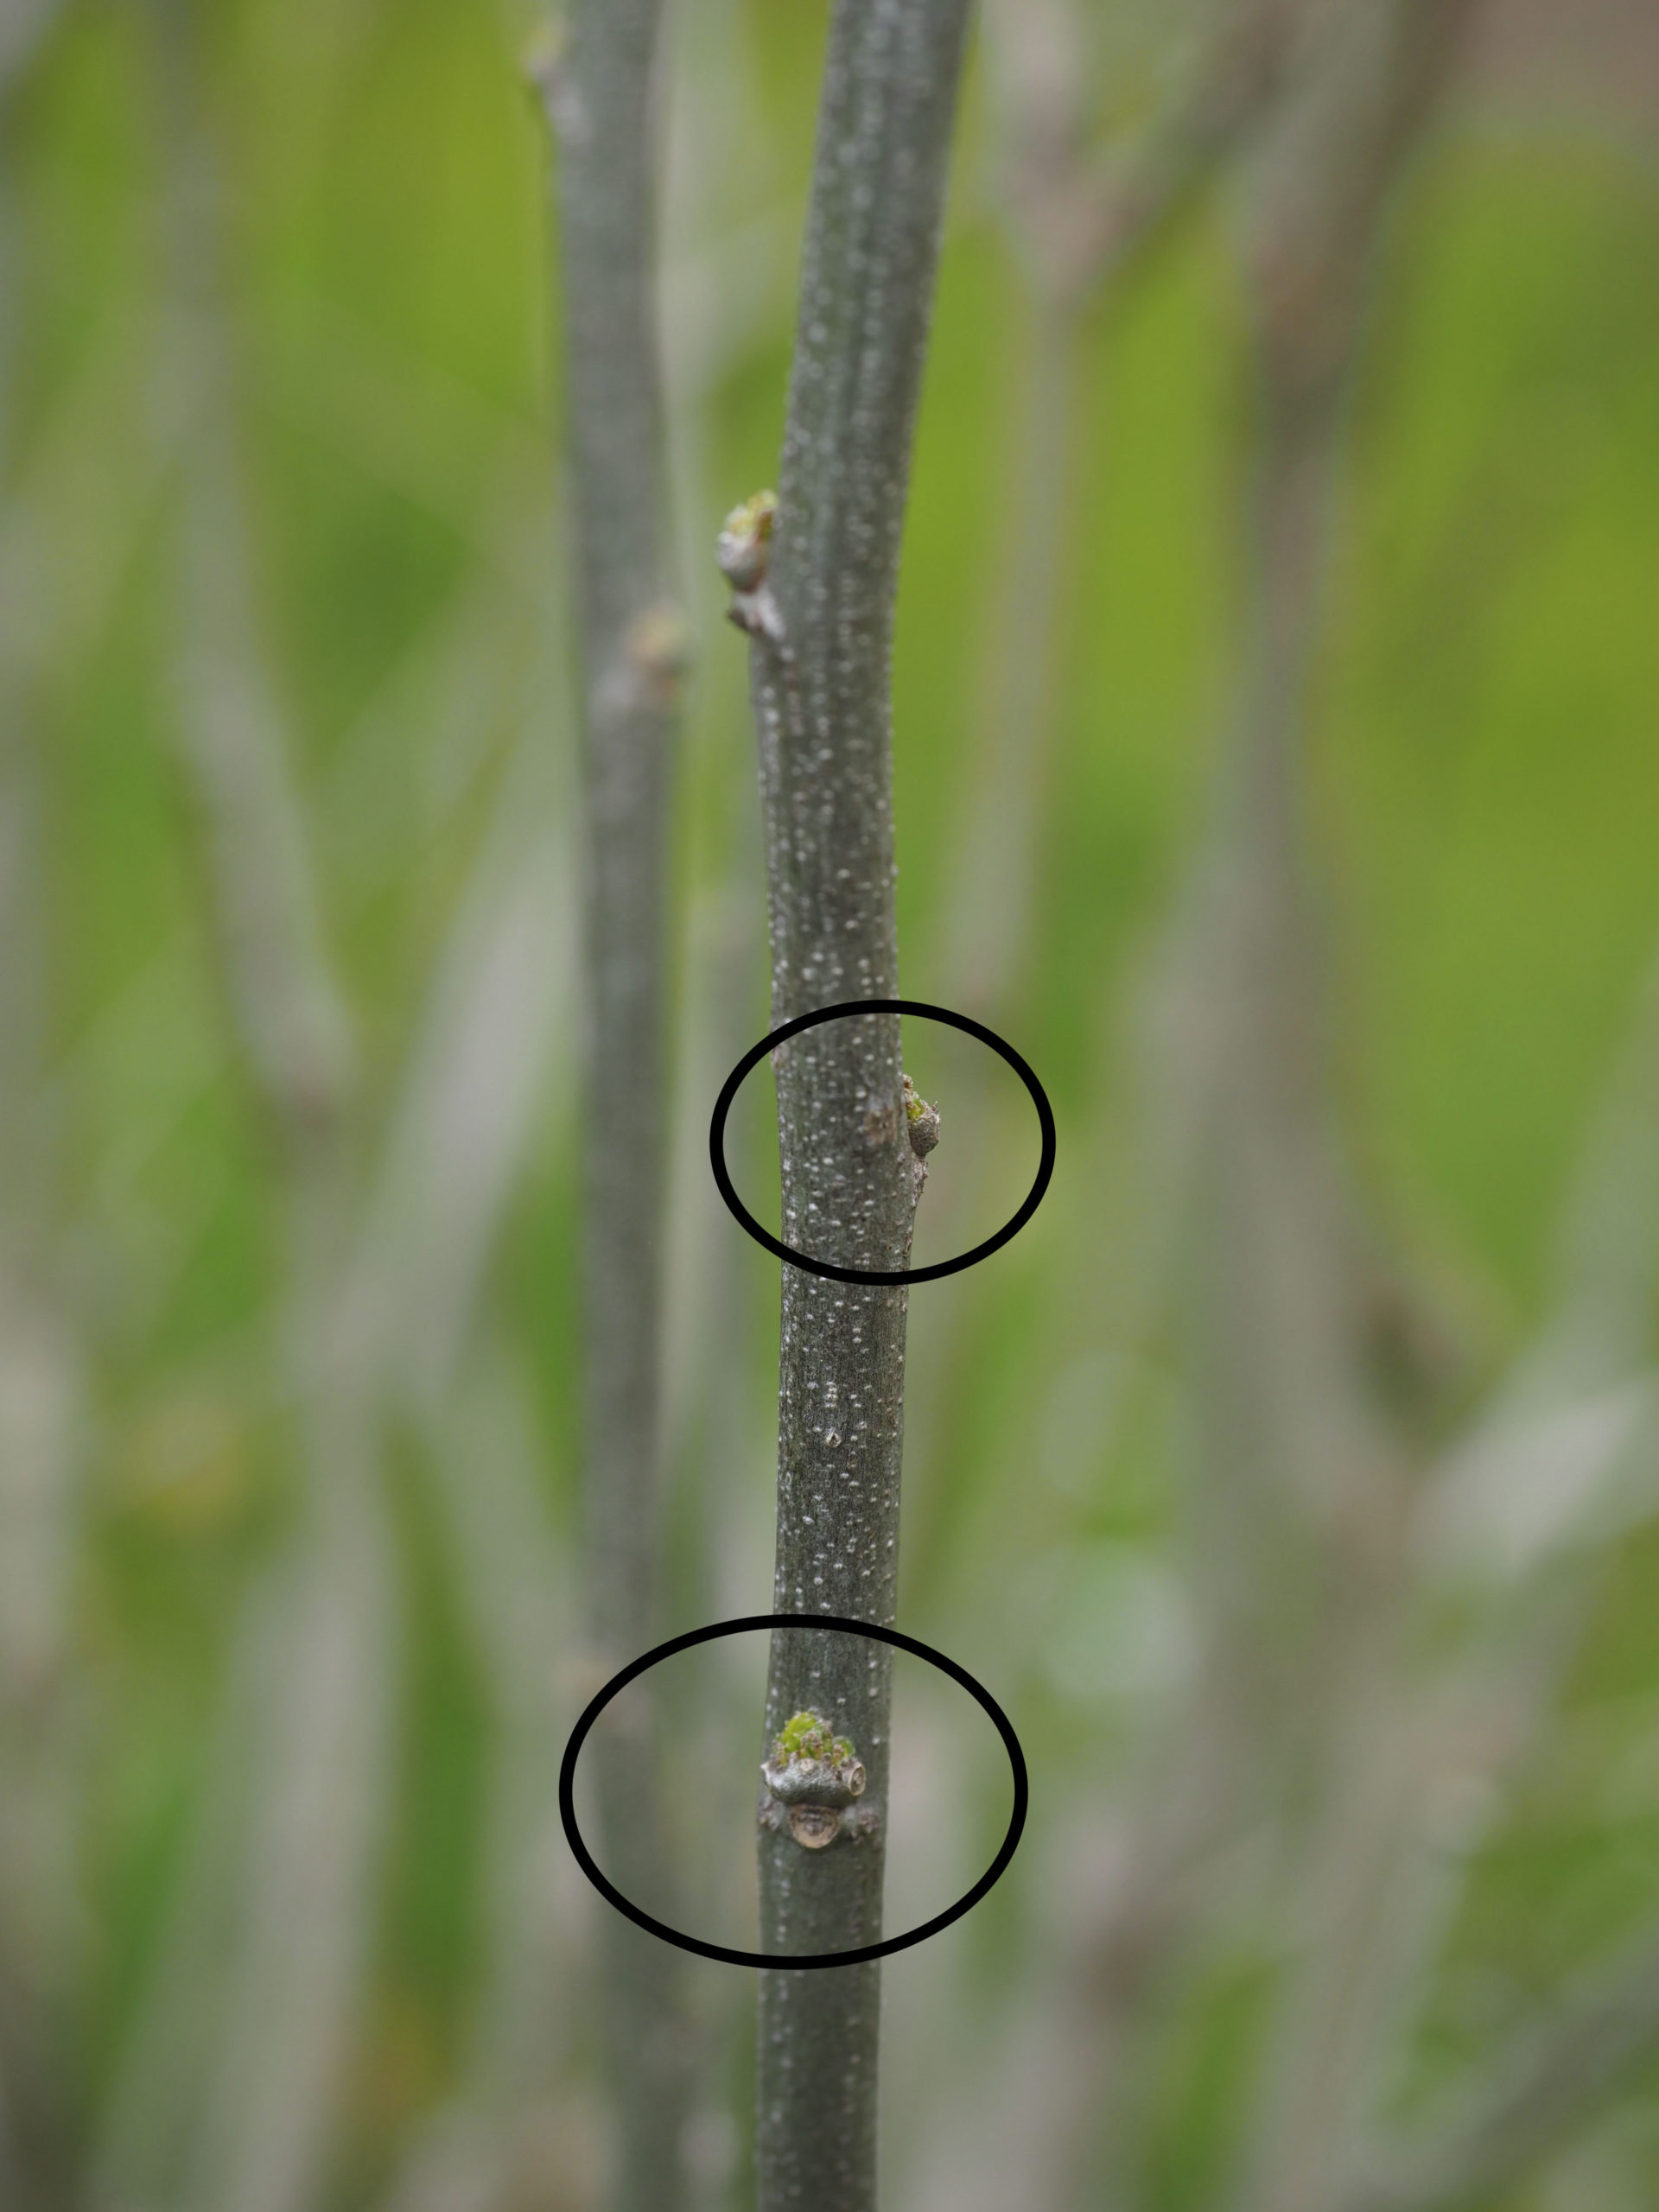 A year old stem, about the thickness of a pencil, with dormant buds (ovals). Since stems may die back in the winter wait to prune until you see the dormant buds 'leaf out' and show green. If you cut just above a out facing bud the new branch will likely emerge there, facing out. Avoid too many prunes with buds facing inwards where the display can get lost amid the foliage.  ANDREW MESSINGER